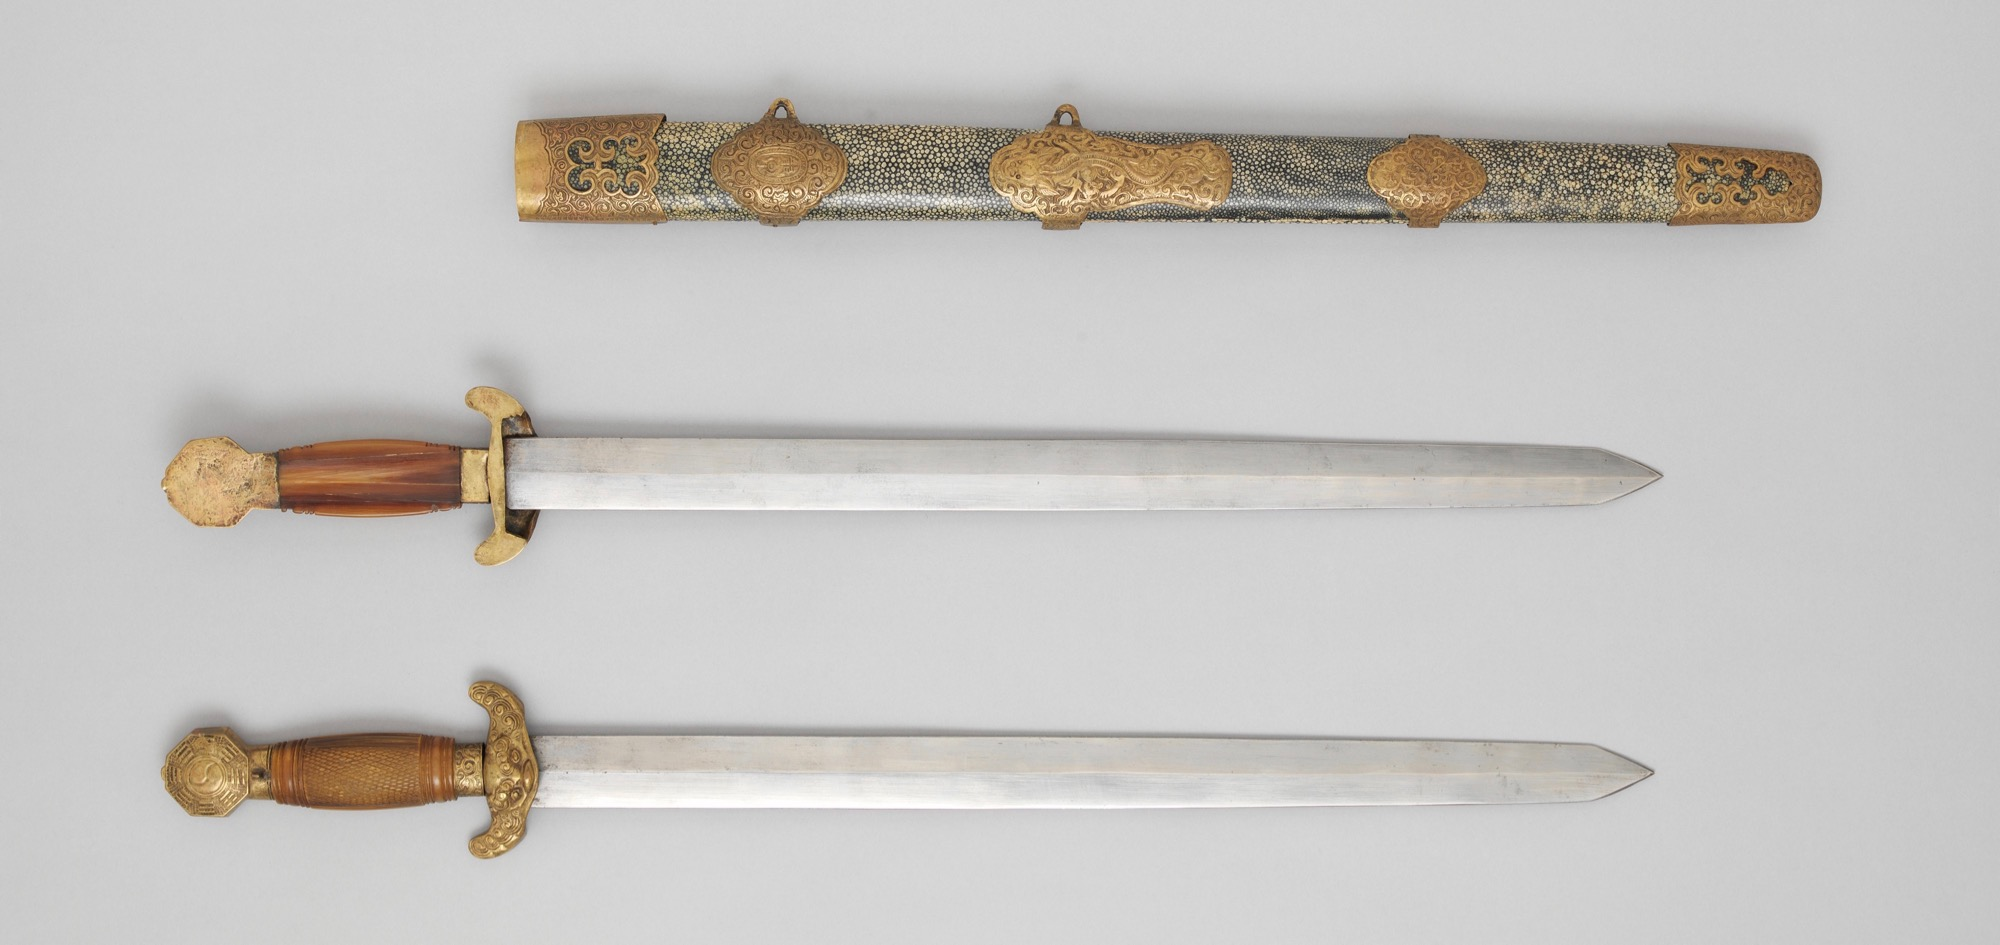 Antique Chinese double swords in the Metropolitan Museum